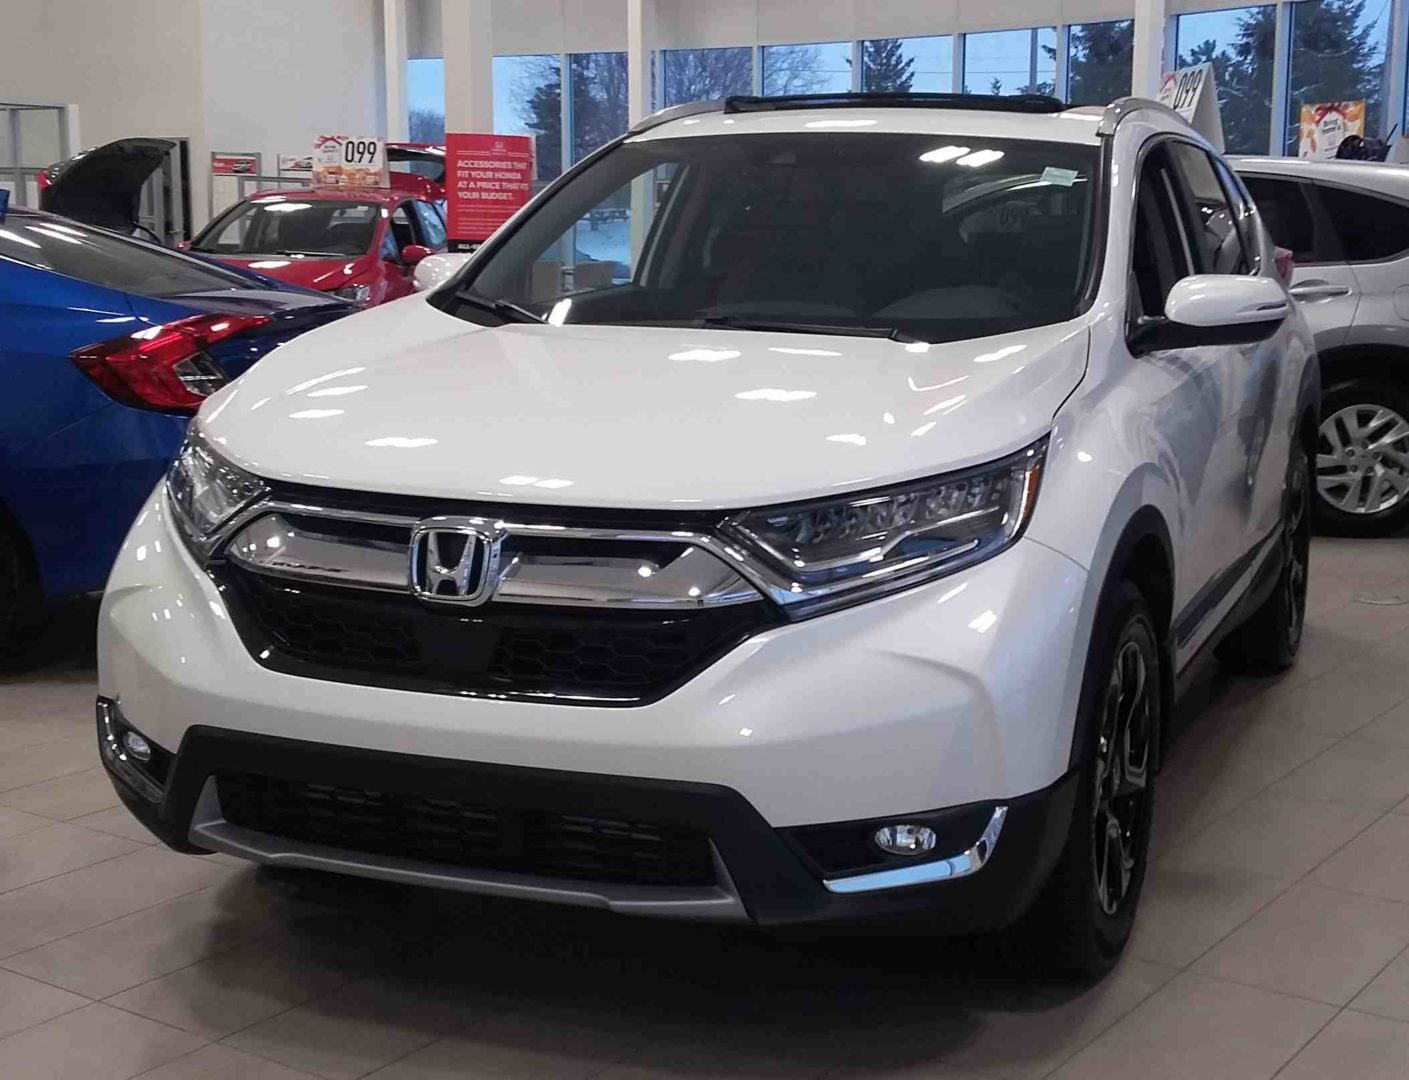 The 2017 Cr V Is Now Available At Dow Honda Visit Us Today To Get A Closer Look This Touring That We Have On Display In White Diamond